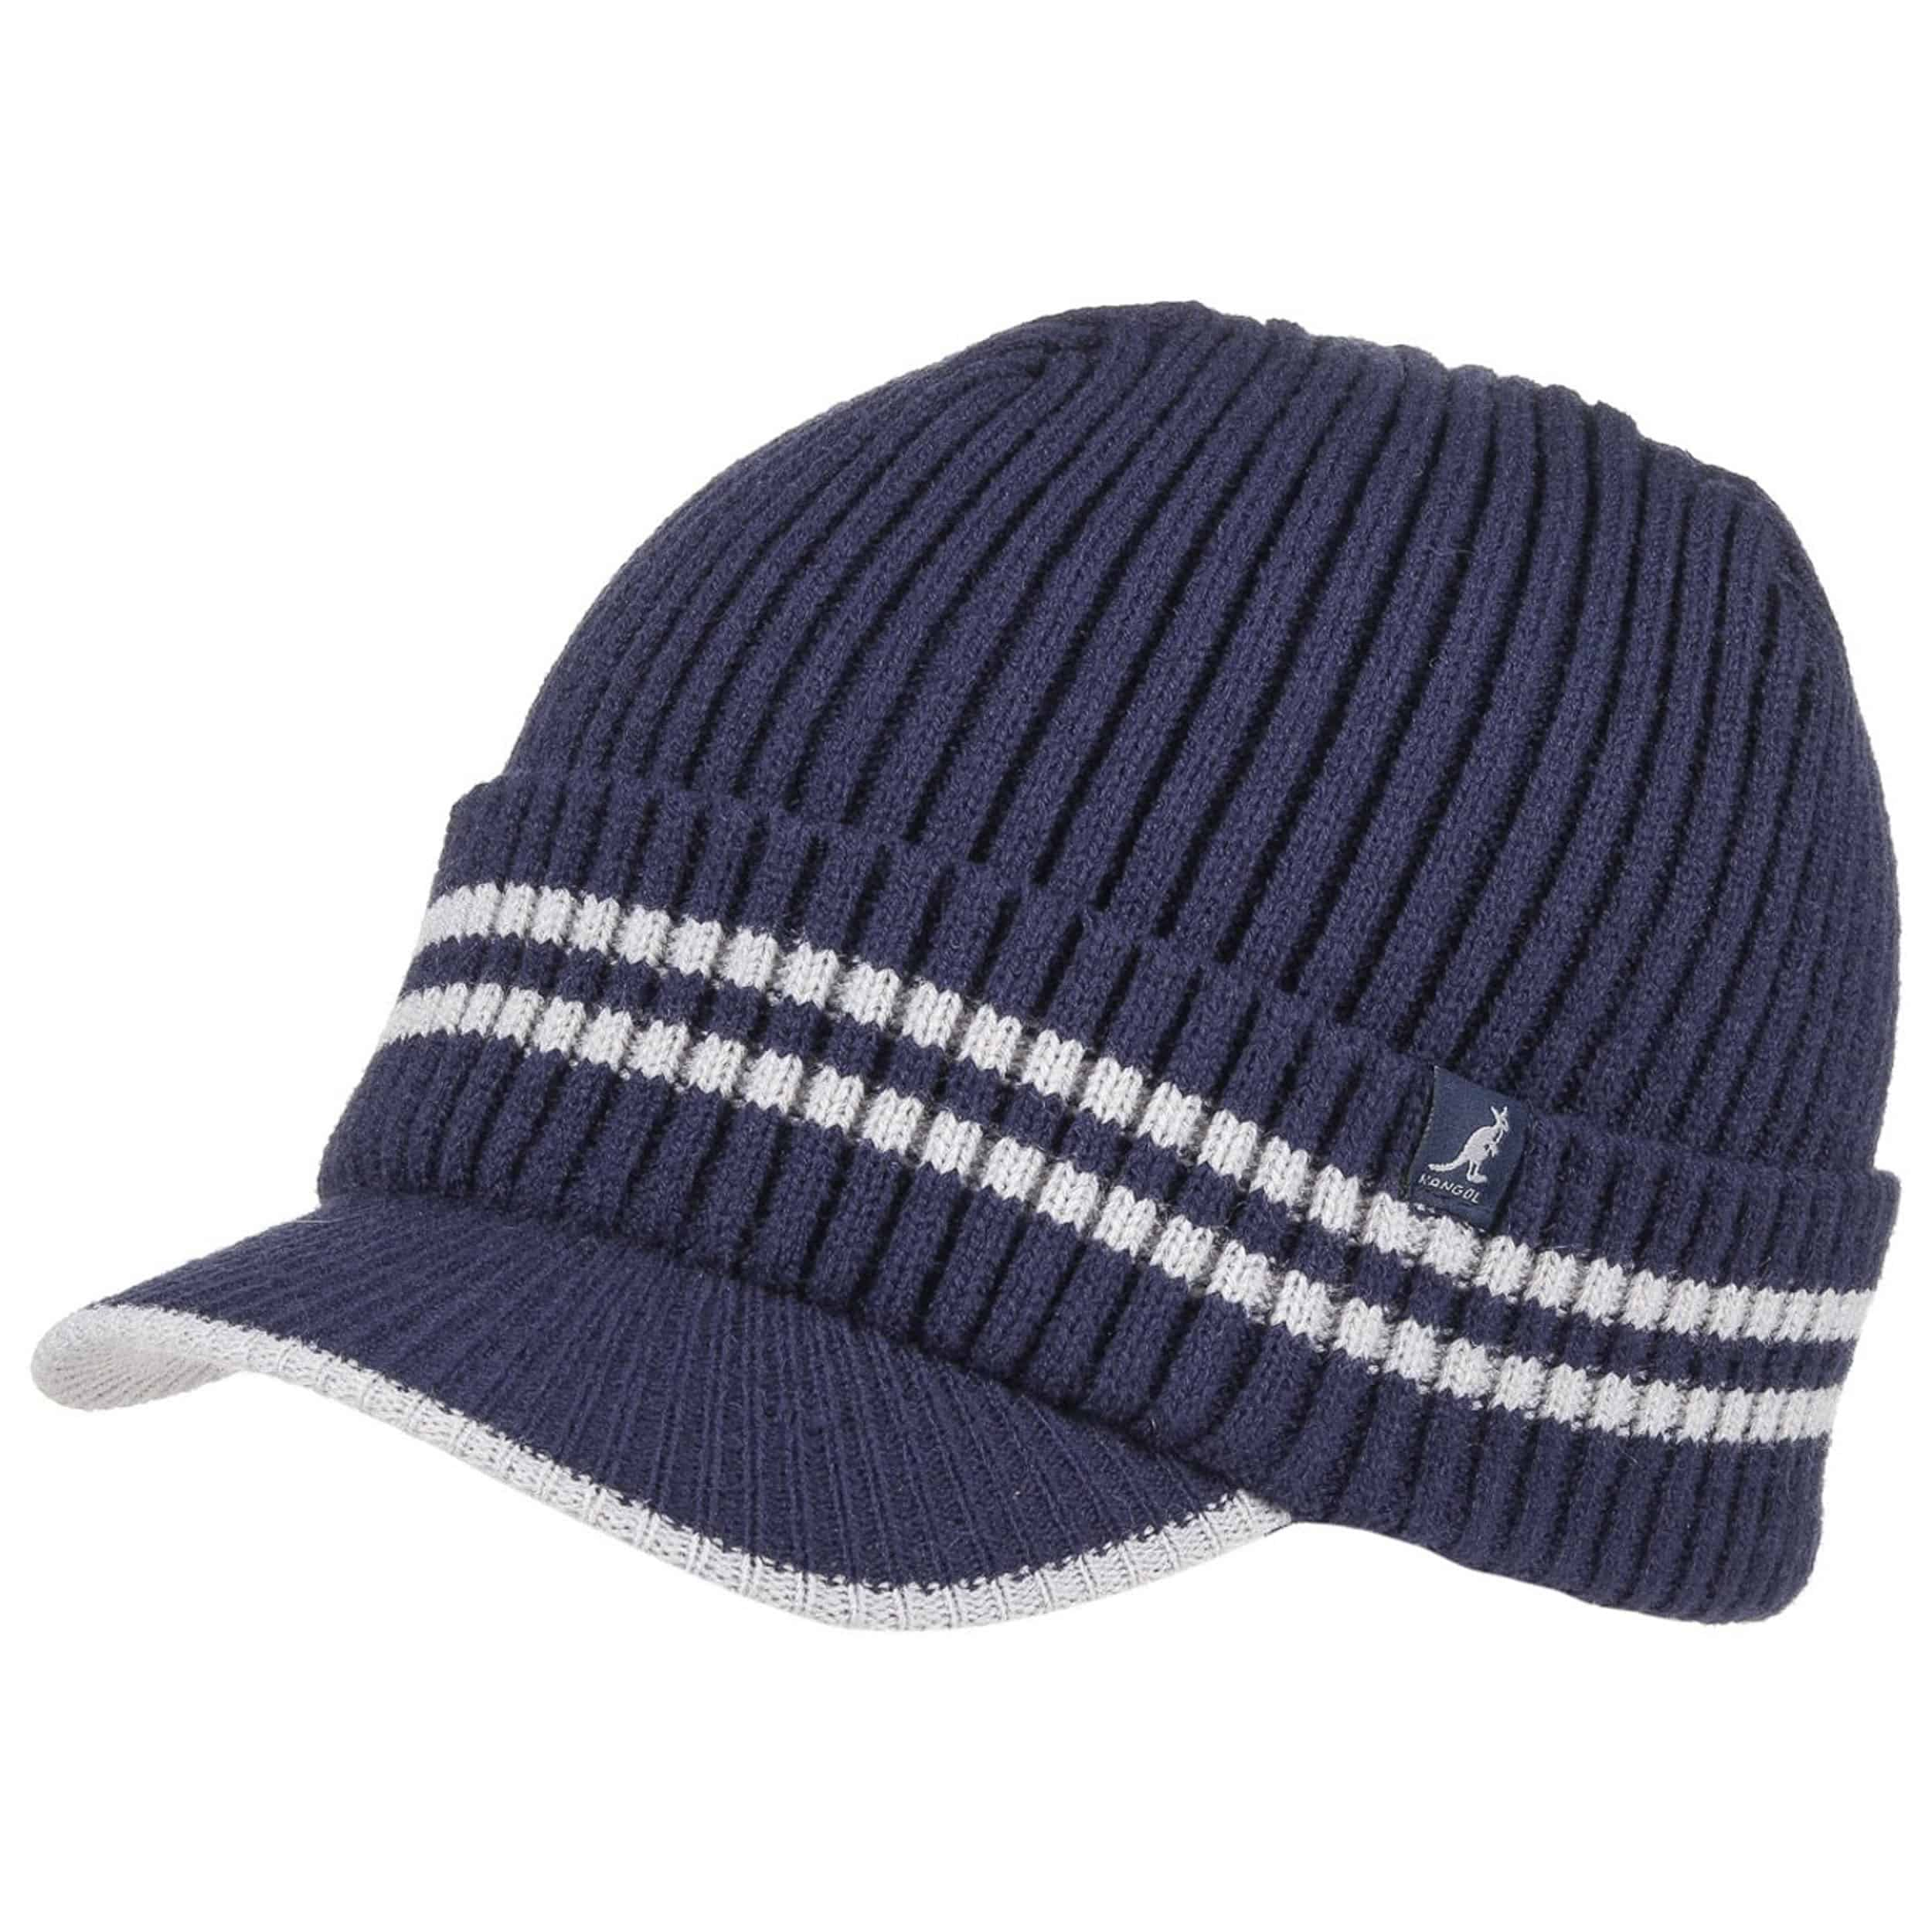 c3f838452f1 ... Cuff Pull On Two Colour Knit Hat by Kangol - blue 1 ...